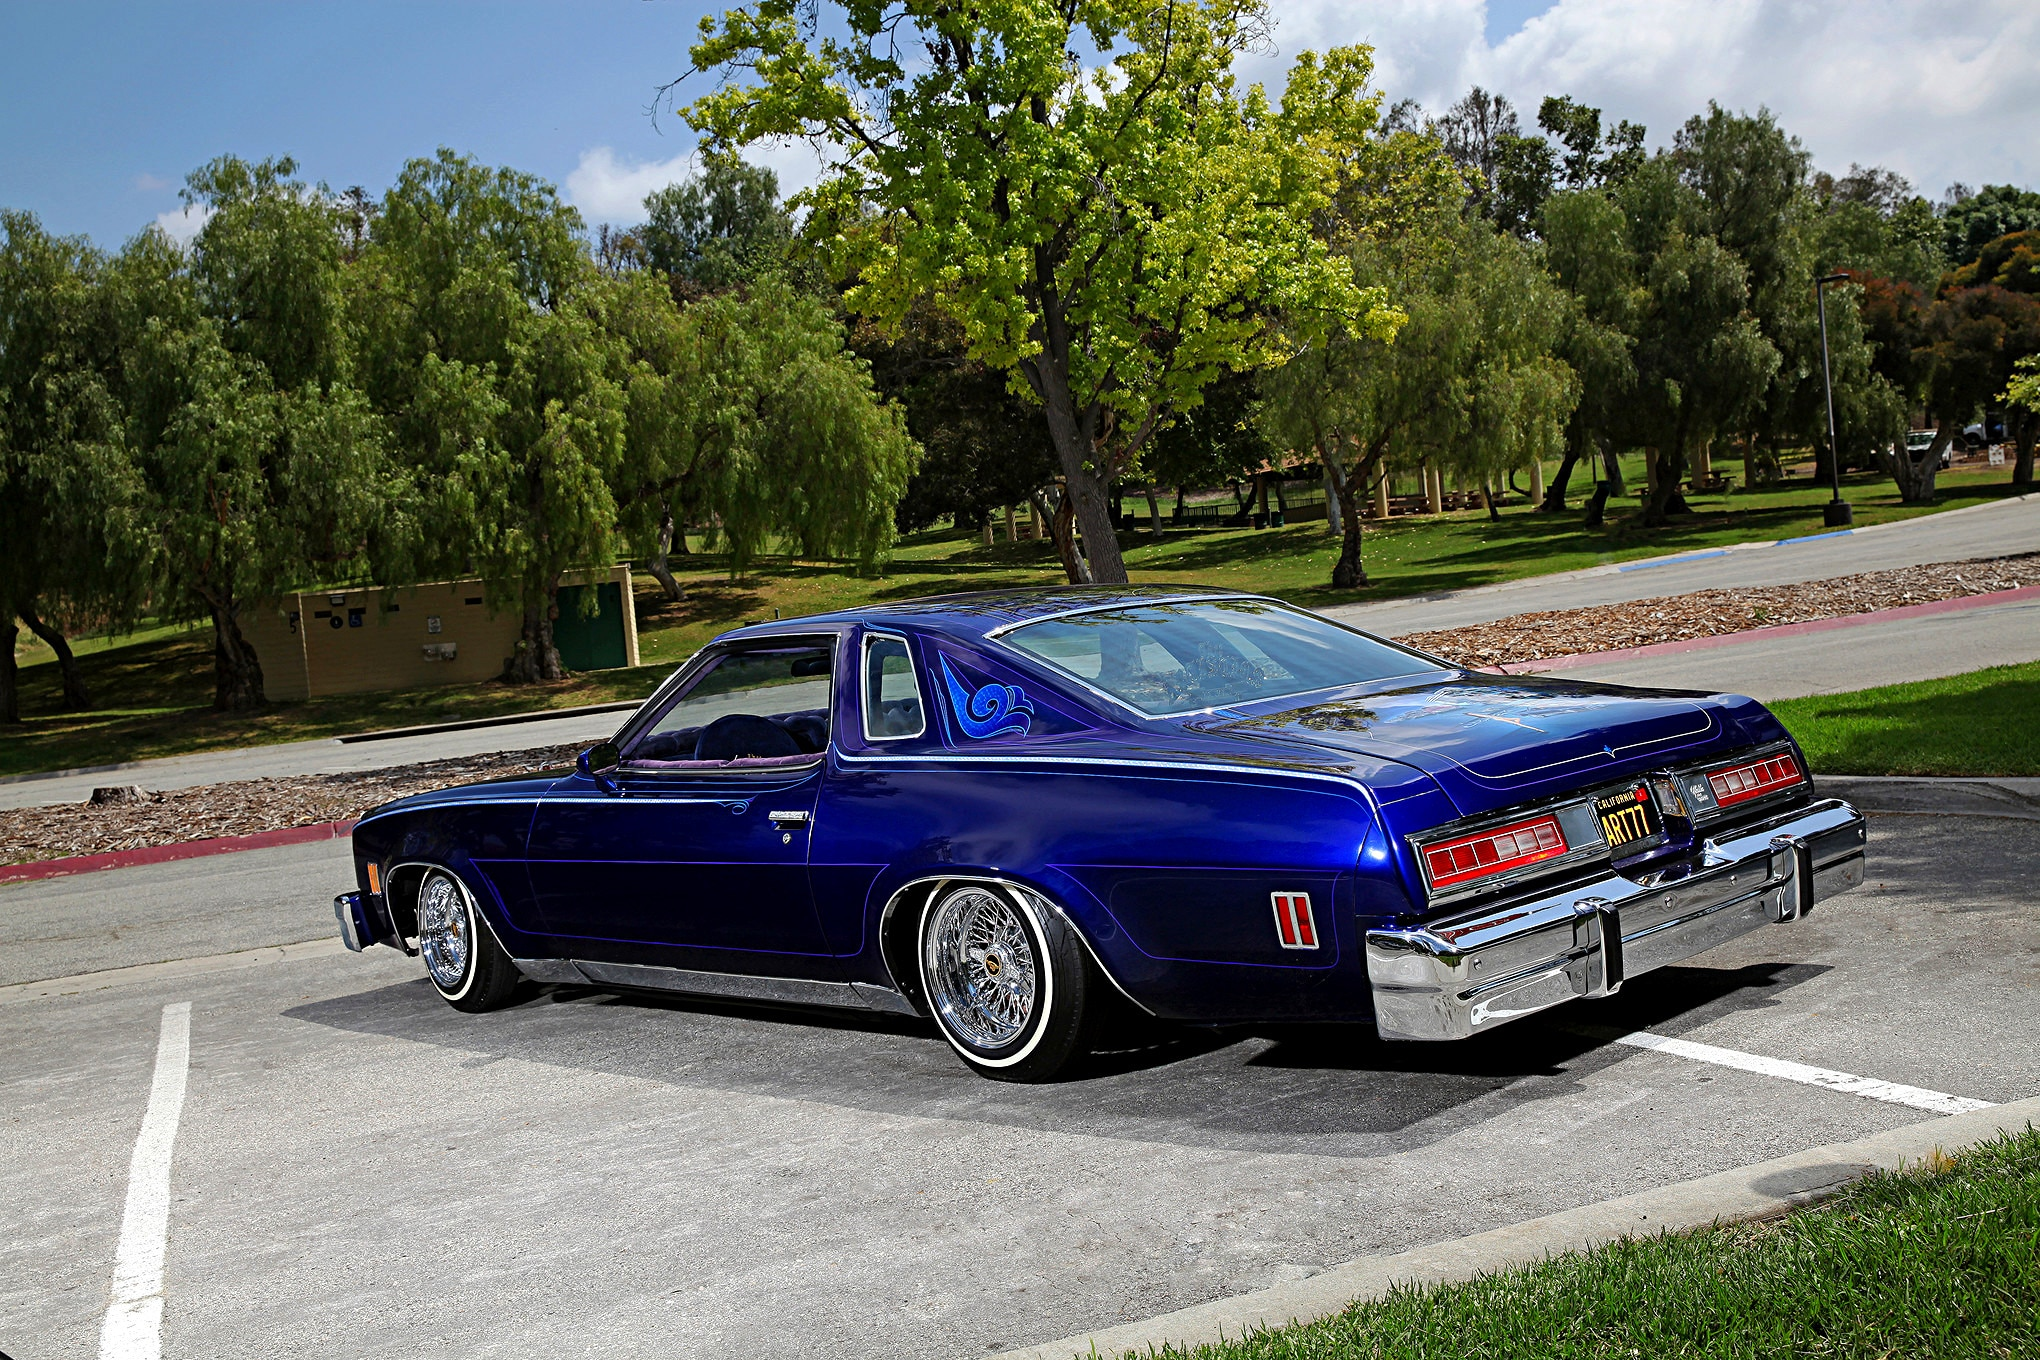 1977 Chevrolet Malibu Classic Driver Side View Lowrider